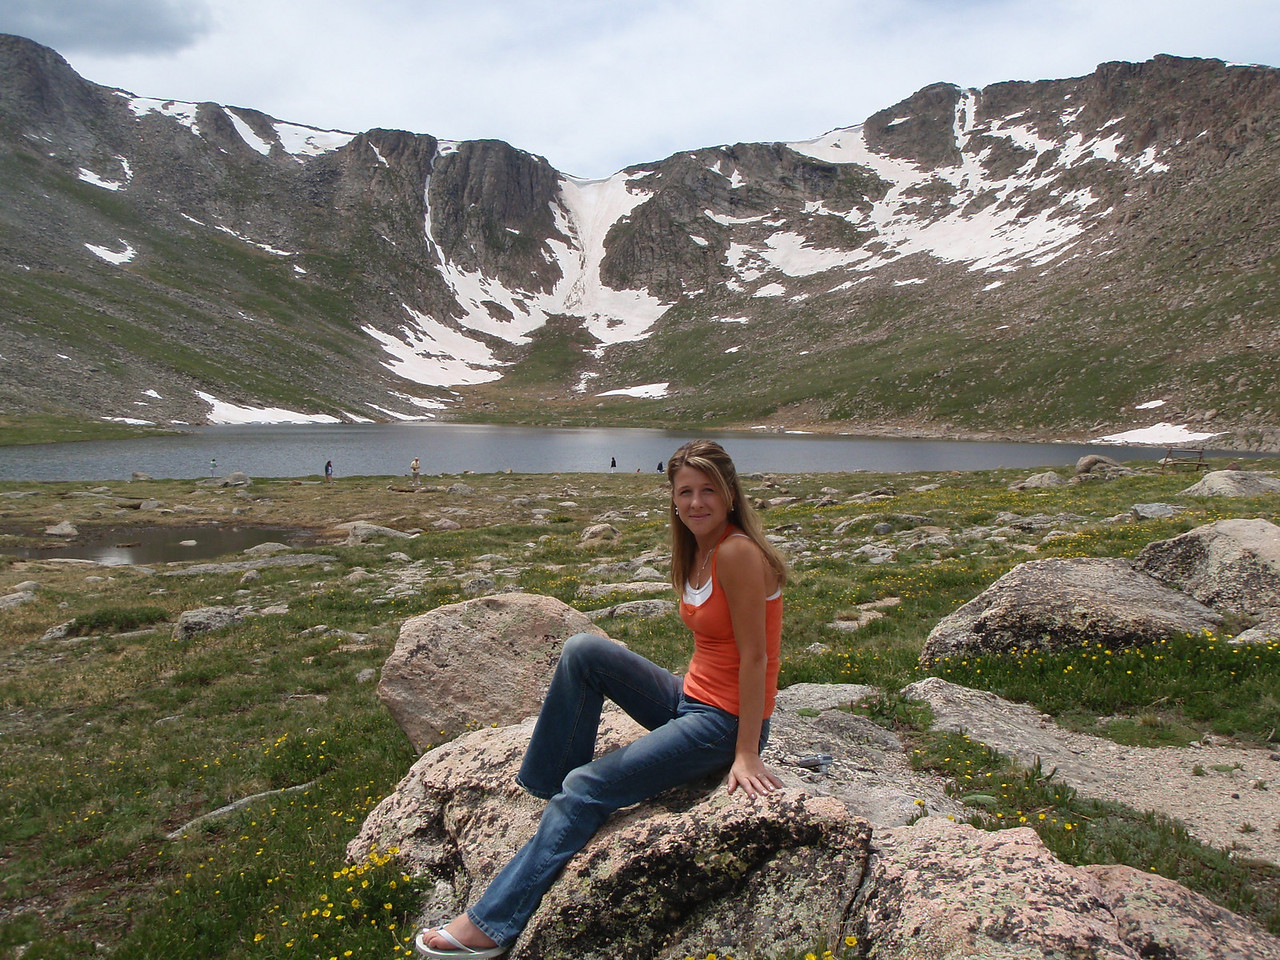 On our first day we drive up to Mt. Evans. Evans is the closest 14er to Denver and has the highest paved road in North America which takes you just below the summit. Here's Rachel at Summit Lake.